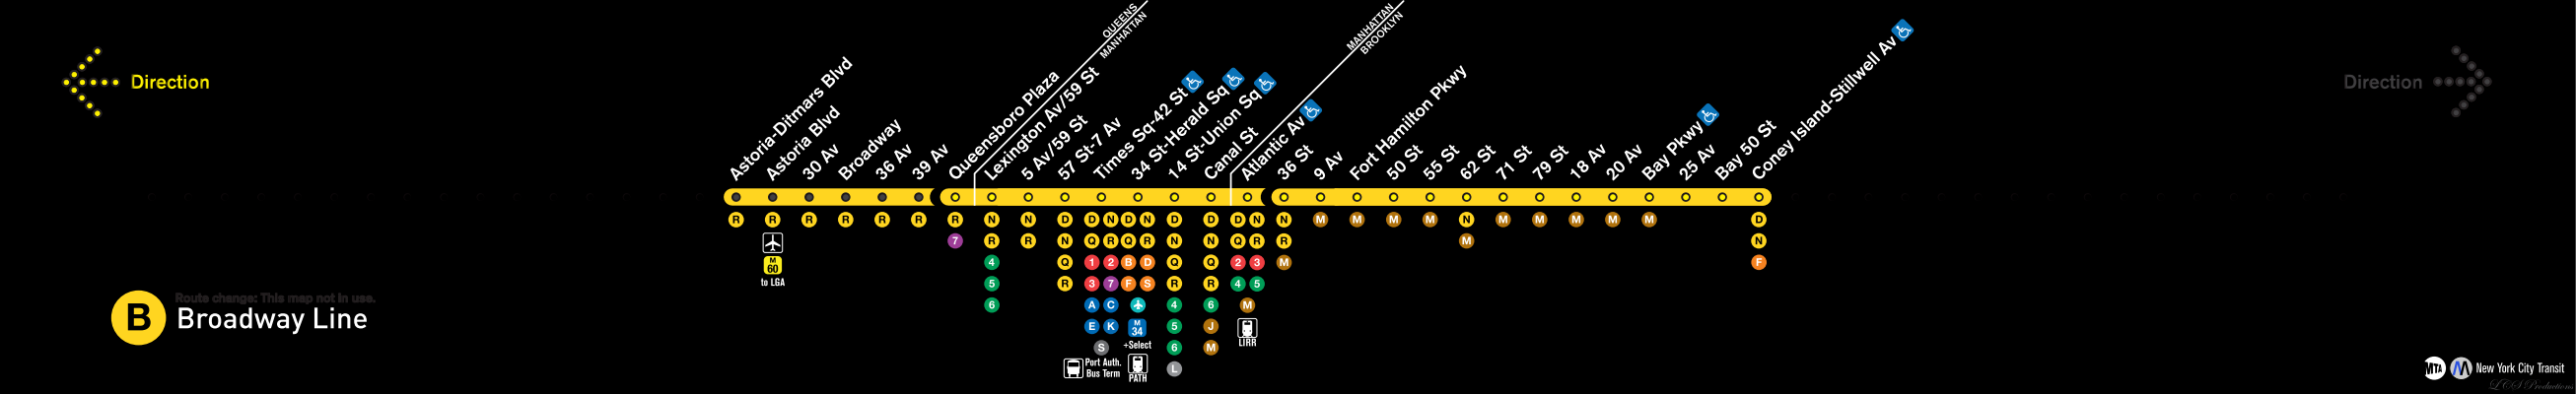 R Strip Maps Version  Art And Graphic Design NYC - Nyc subway map j train